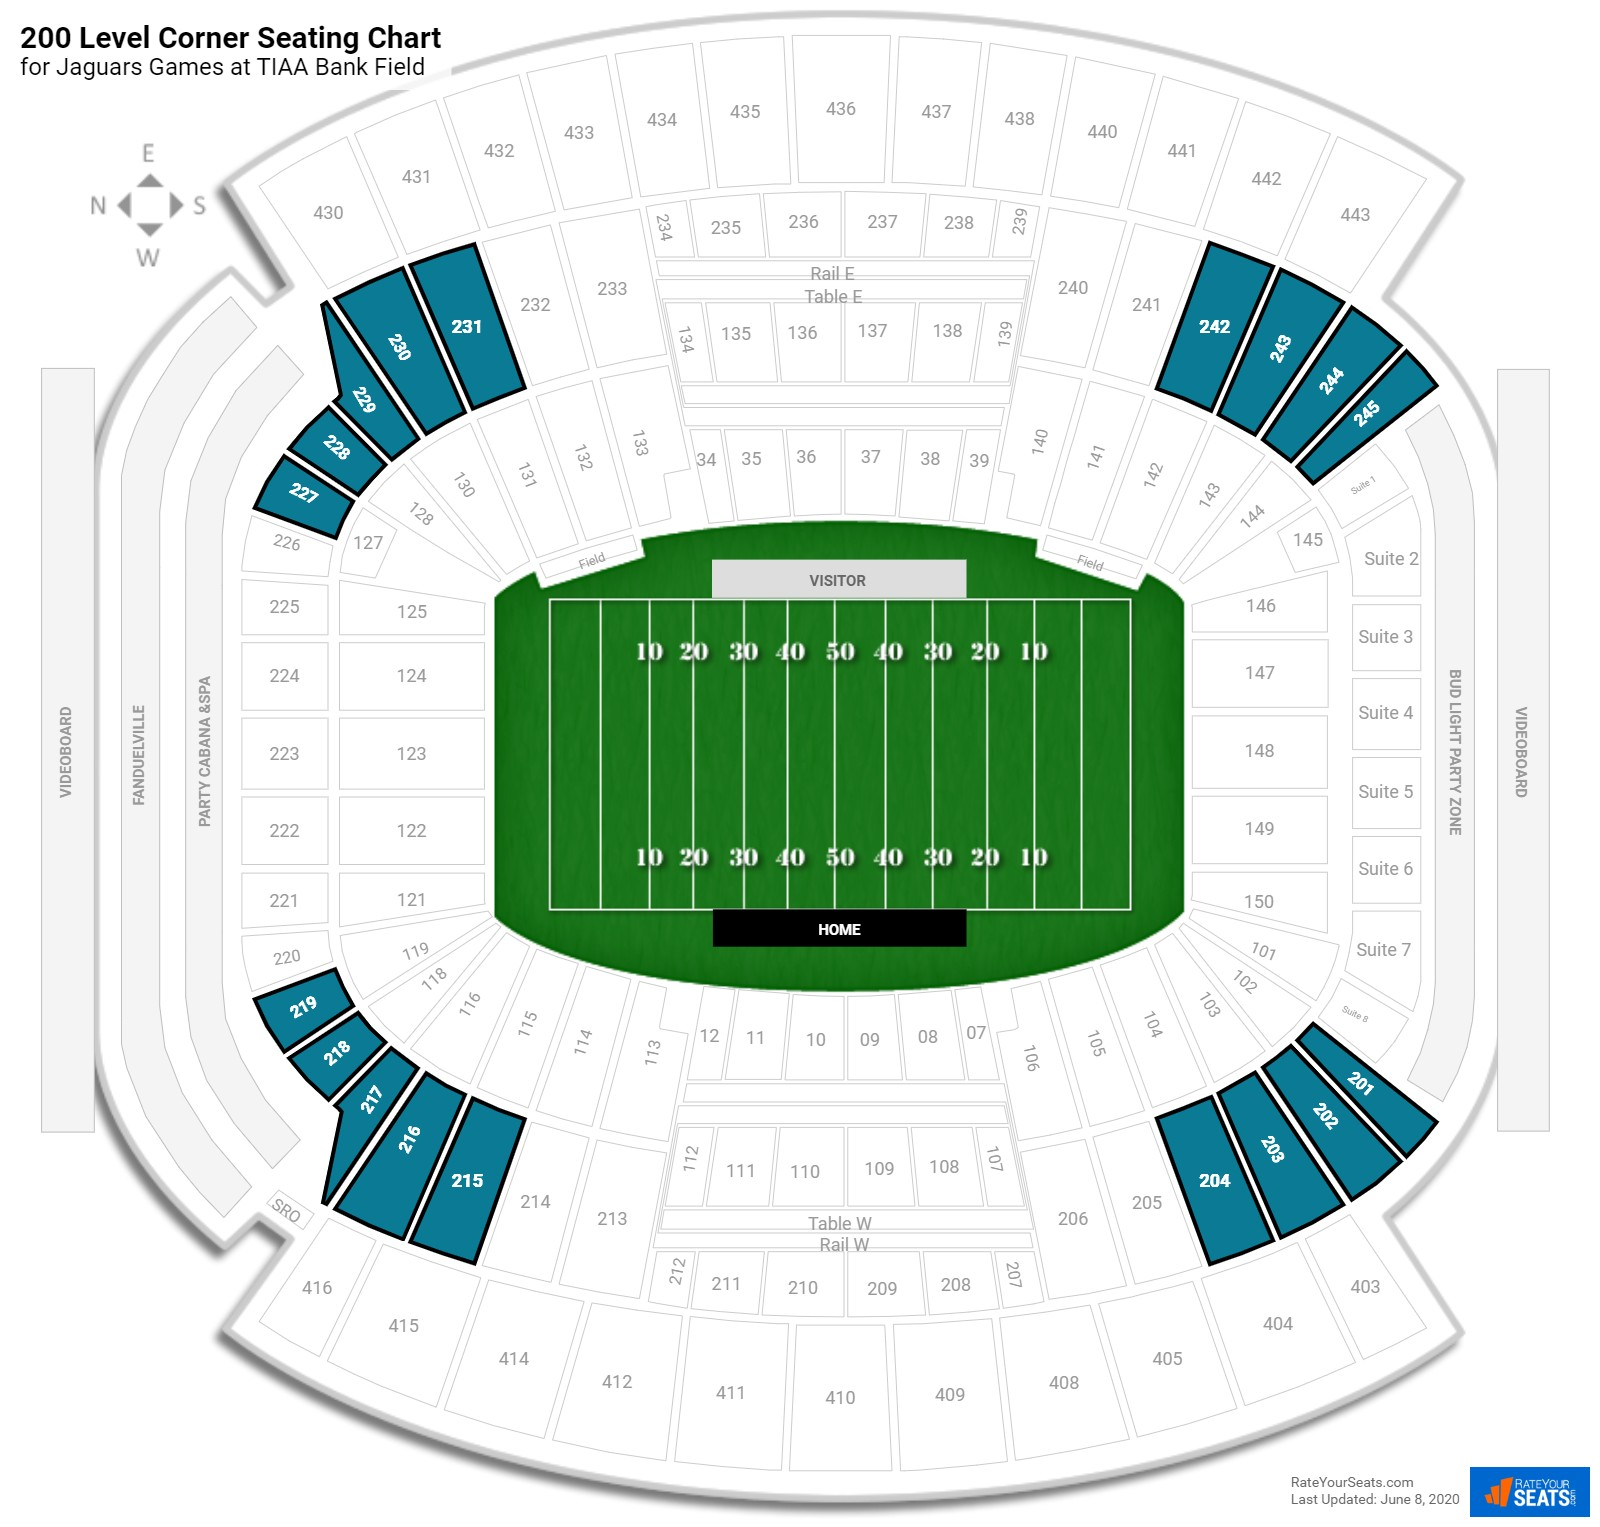 EverBank Field 200 Level Corner seating chart